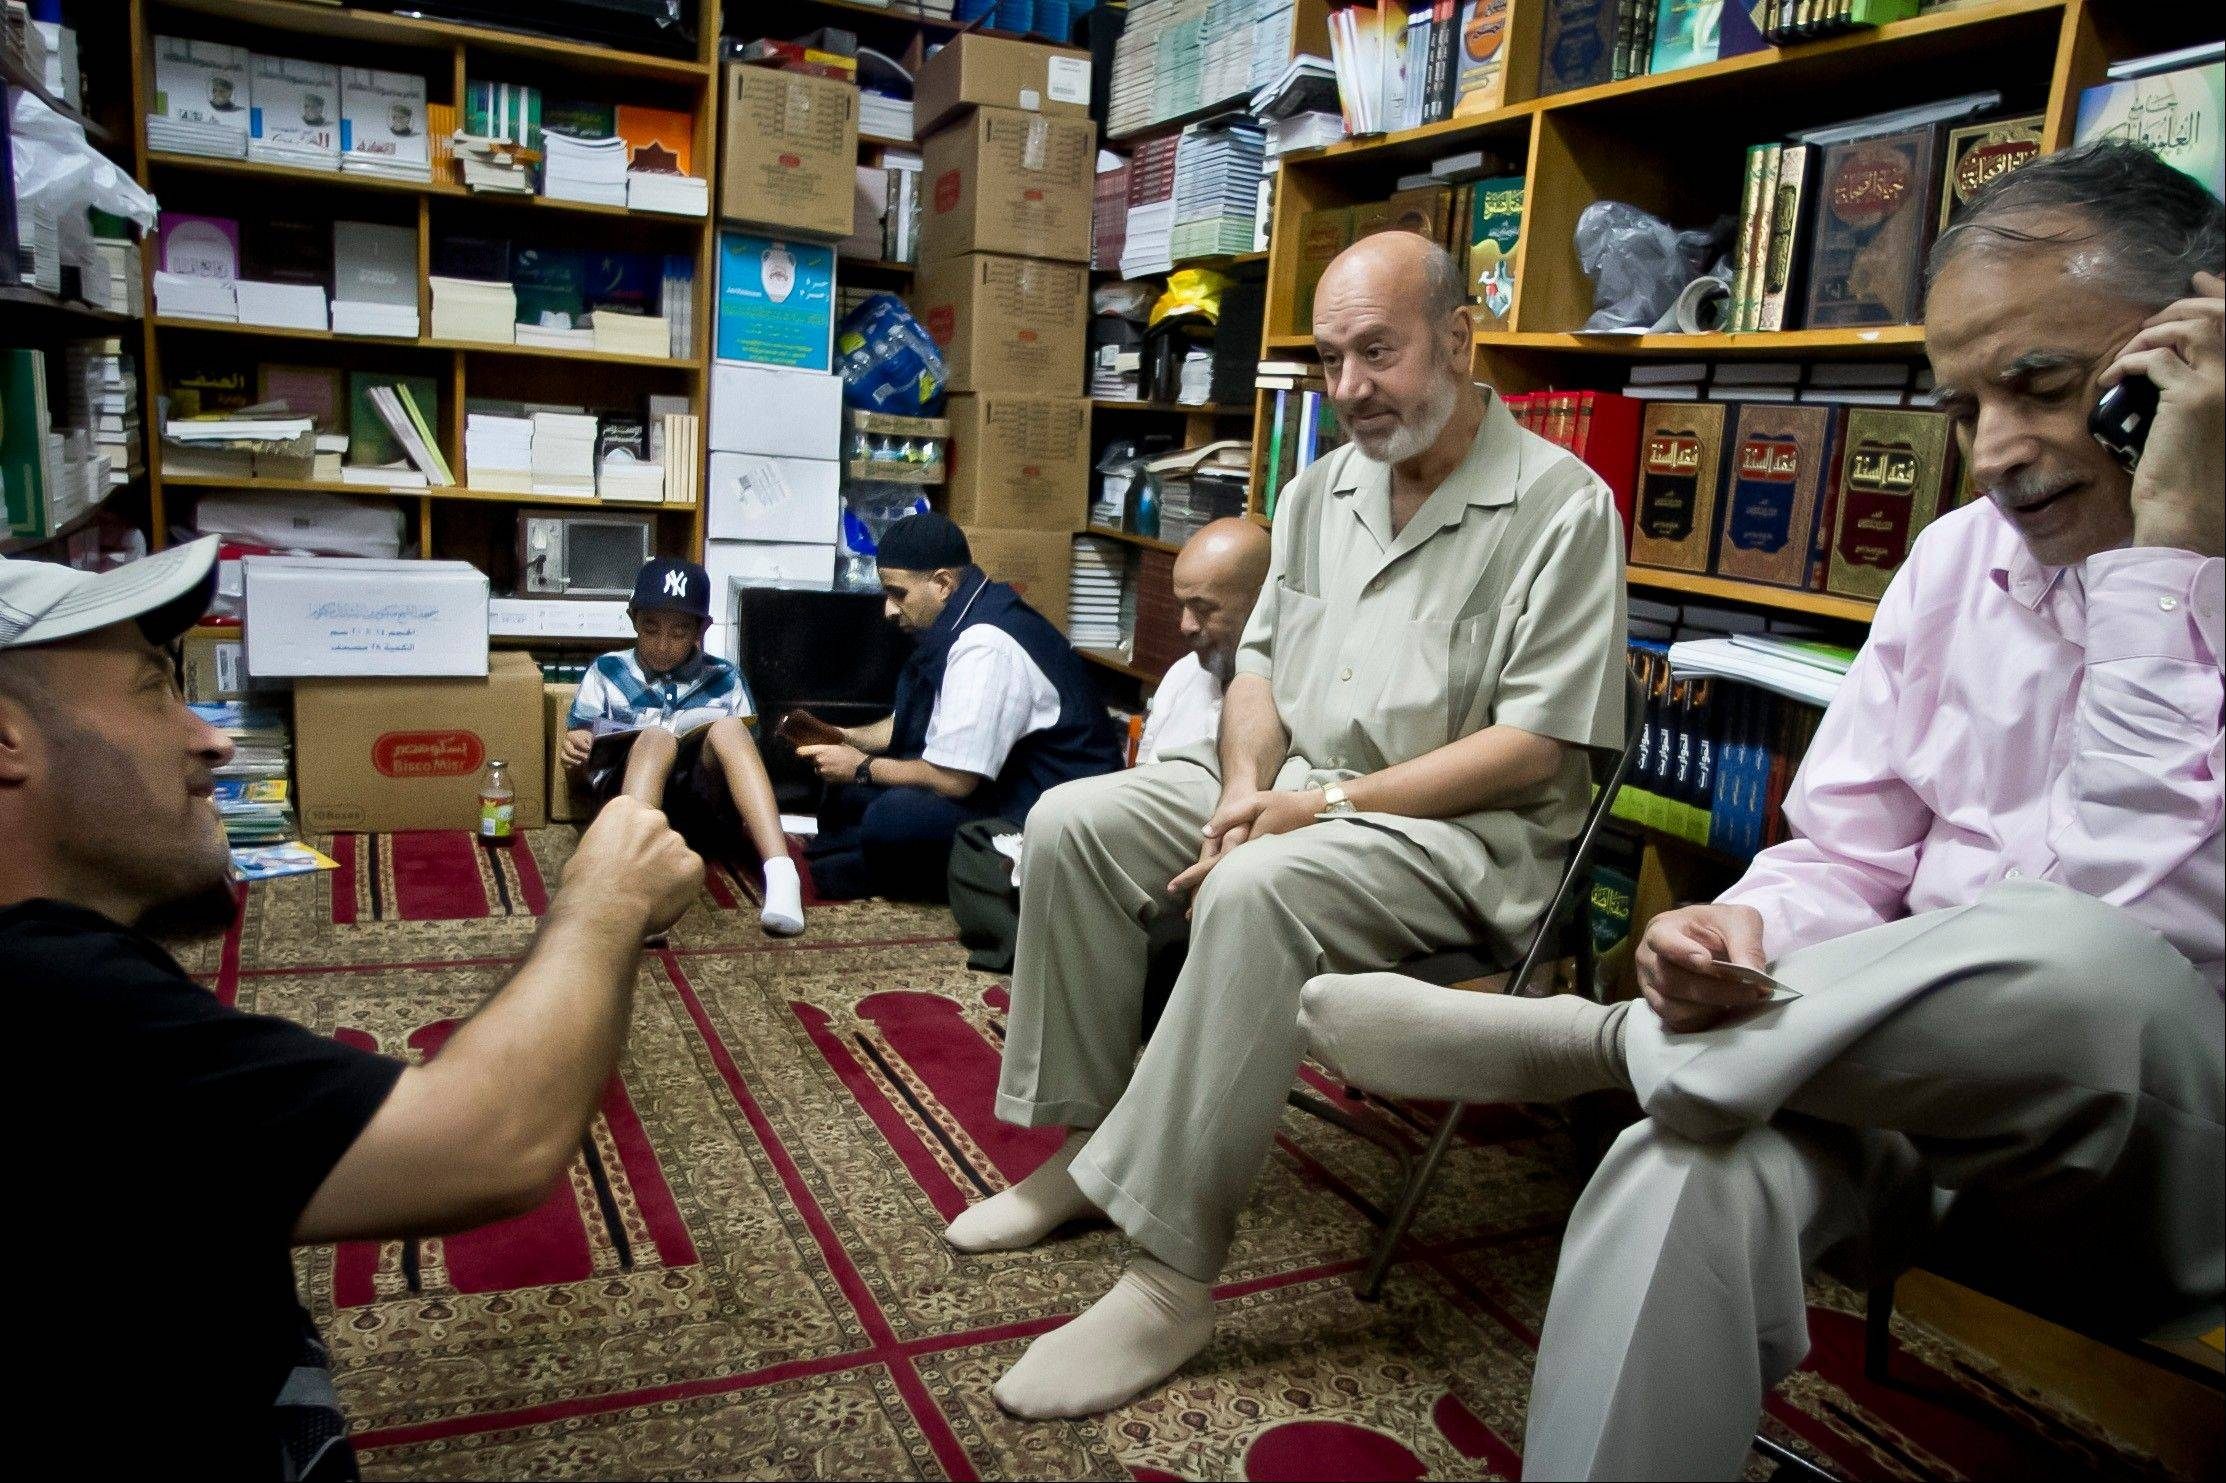 Zein Rimawi, 59, second from right, a leader and founder of the Islamic Society of Bay Ridge and mosque, meet with members in his office before a Jumu'ah prayer service at the mosque on Friday, Aug. 16, 2013 in Brooklyn, N.Y. The NYPD targeted his mosque as a part of a terrorism enterprise investigation beginning in 2003, spying on it for years. The mosque has never been charged as part of a terrorism conspiracy.